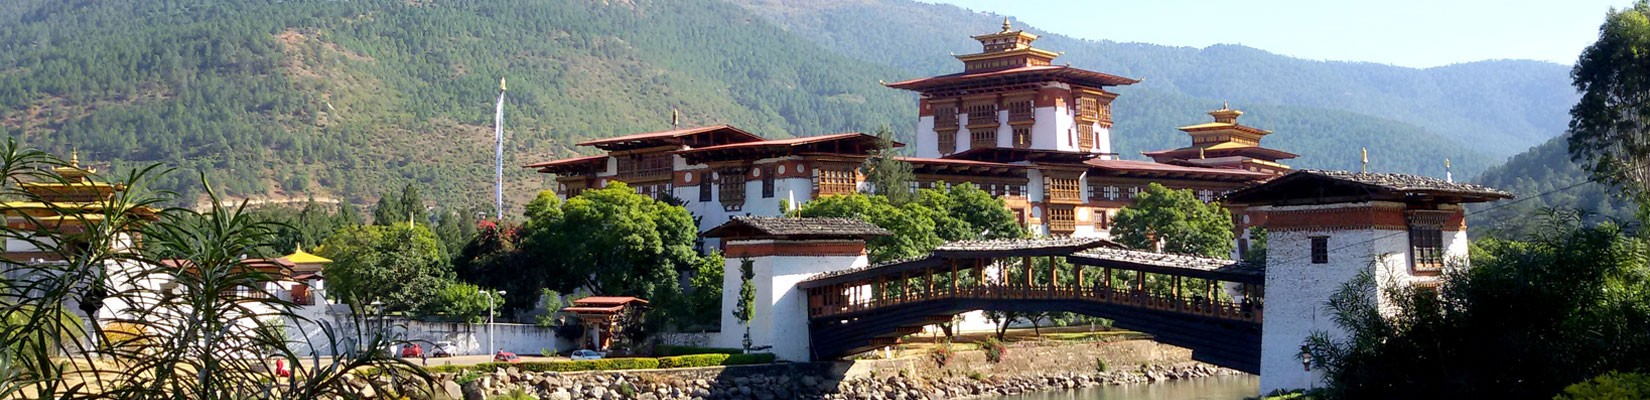 BHUTAN - The Land of Thunder Dragon